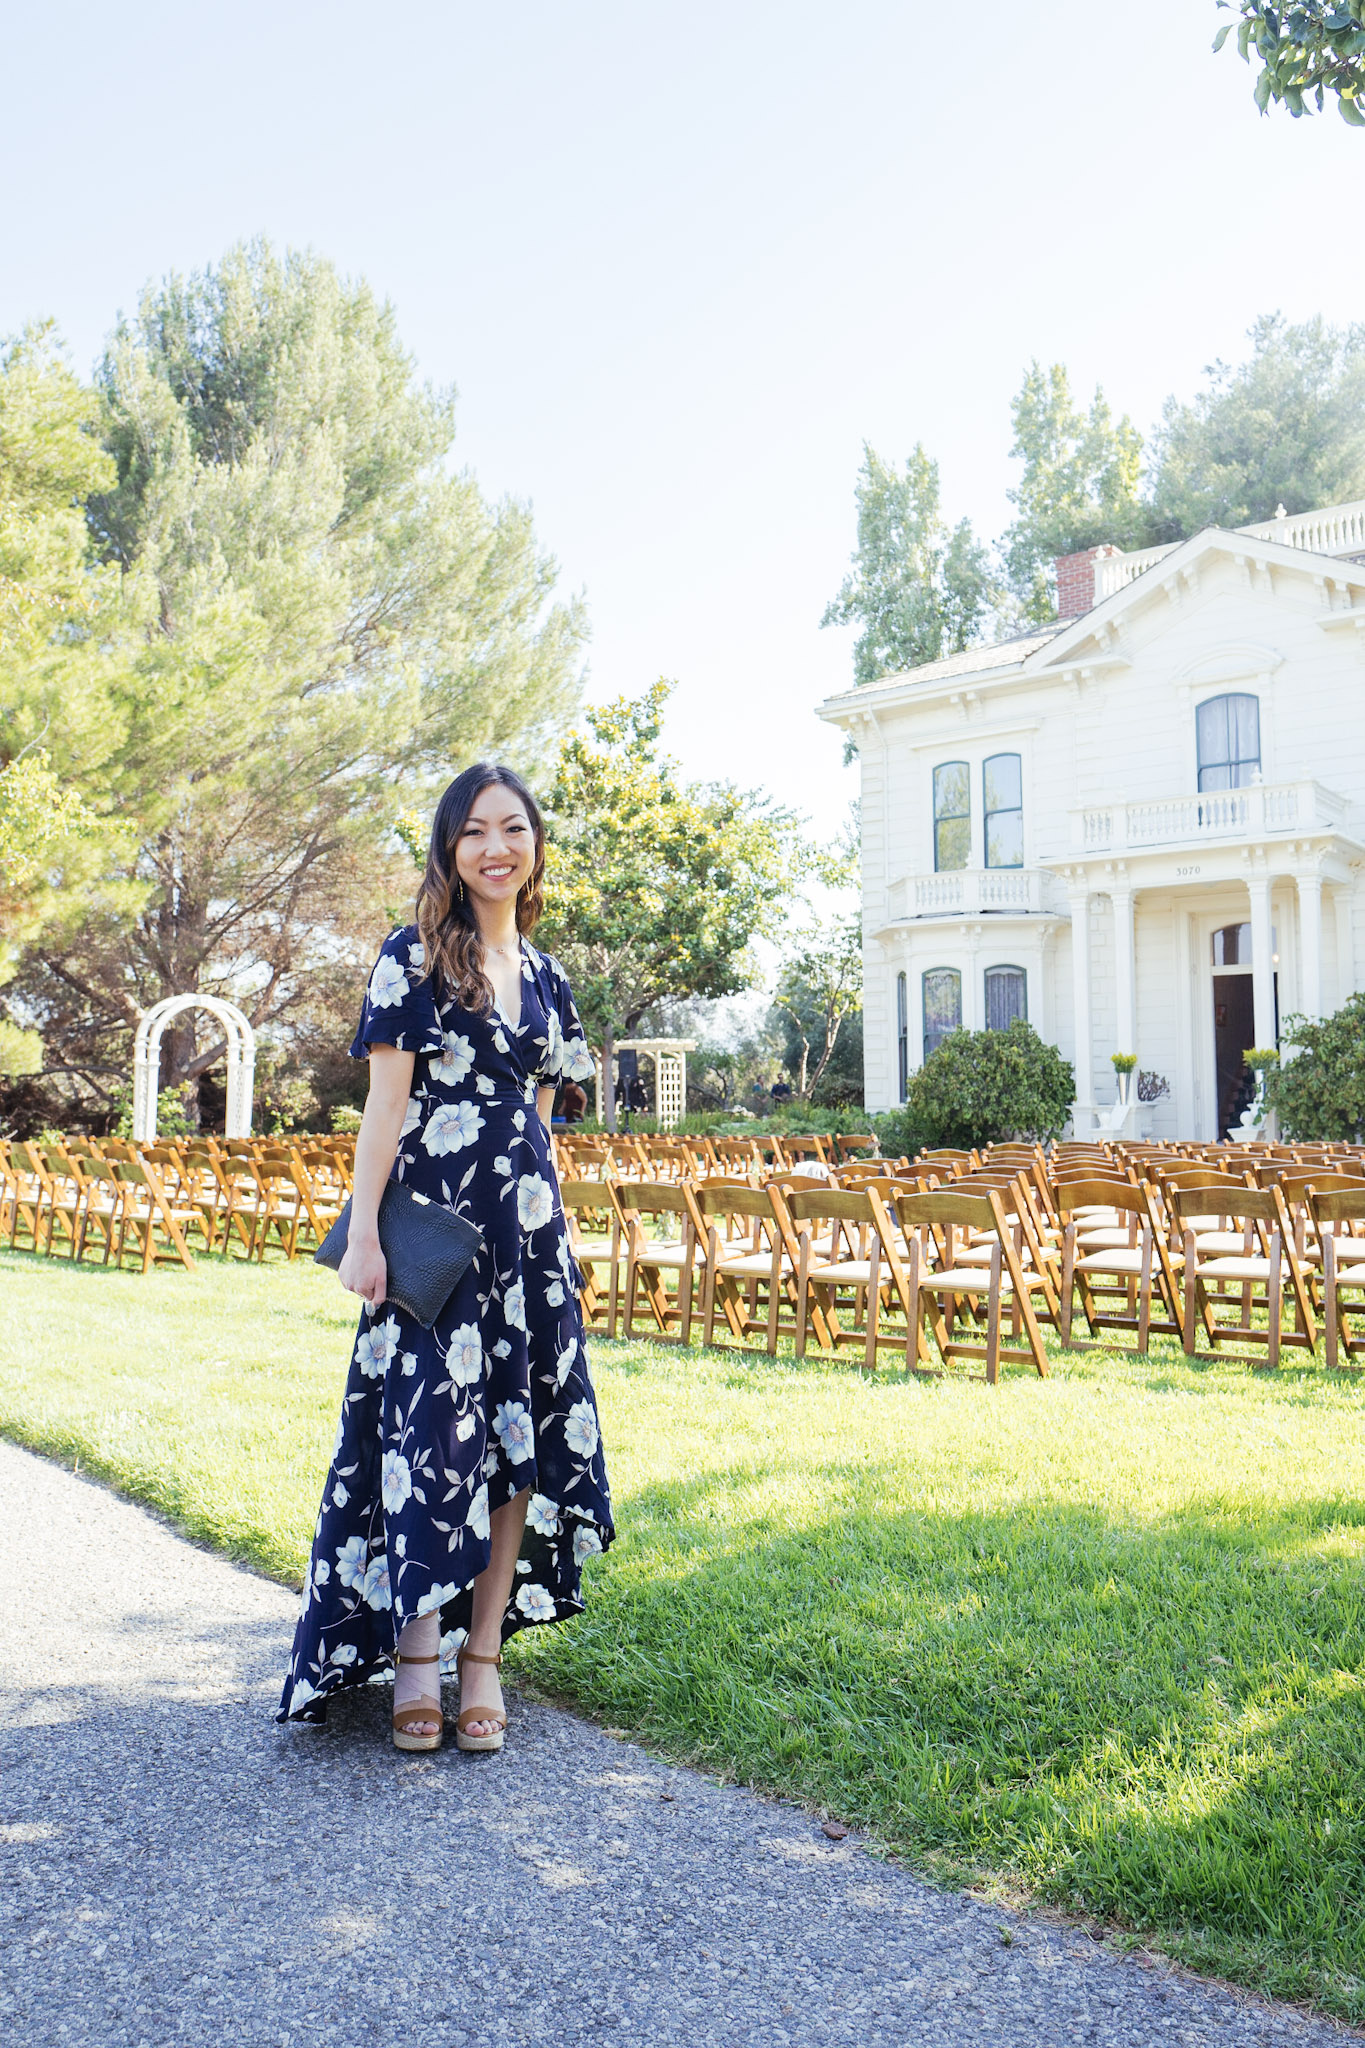 Wedding at Rengstorff House, Mountain View – TREND ENVY